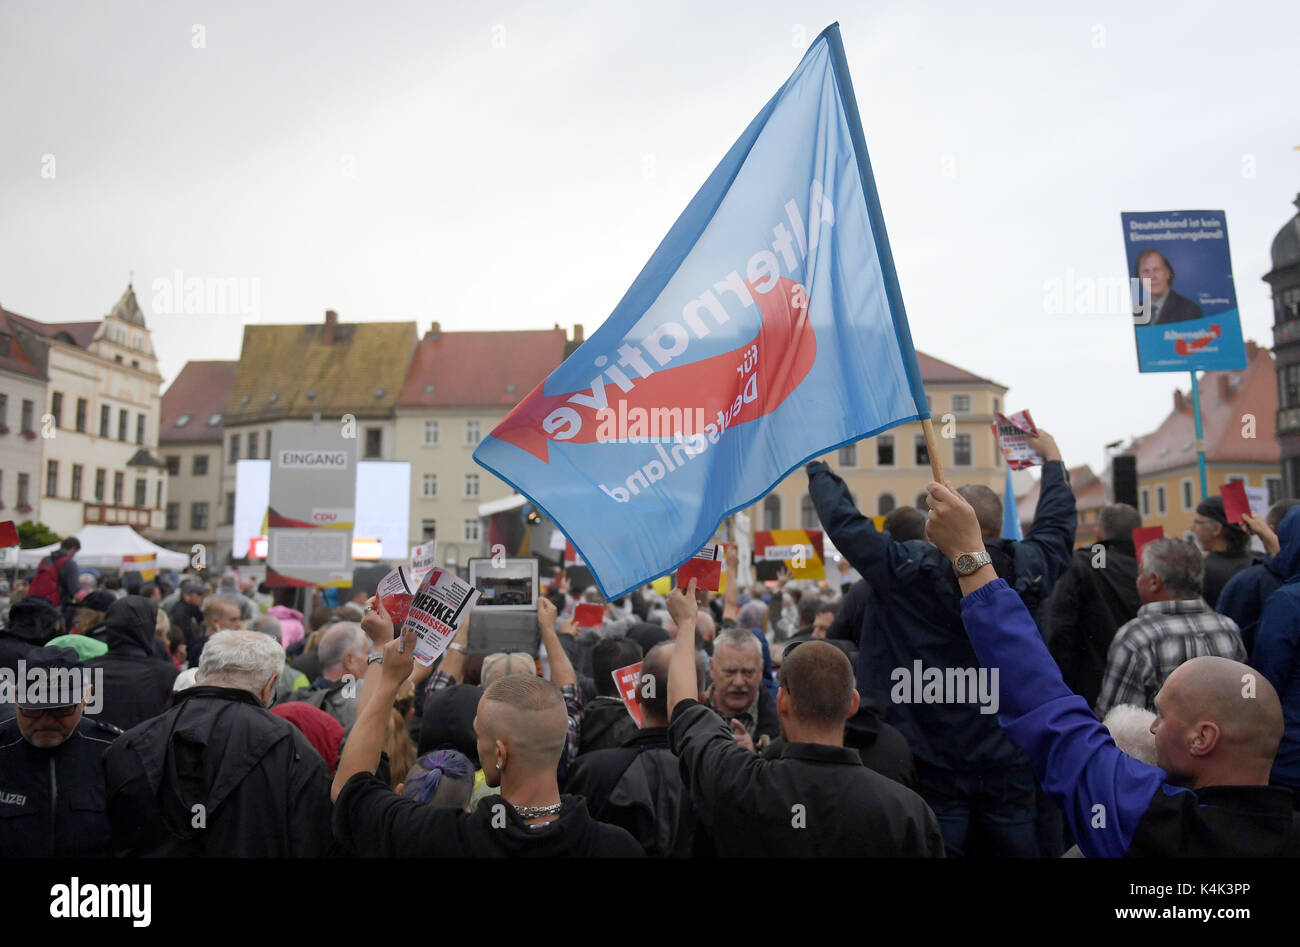 AfD (Alternative for Germany) supoorters protest at an CDU election campaign in Torgau, Germany, - Stock Image